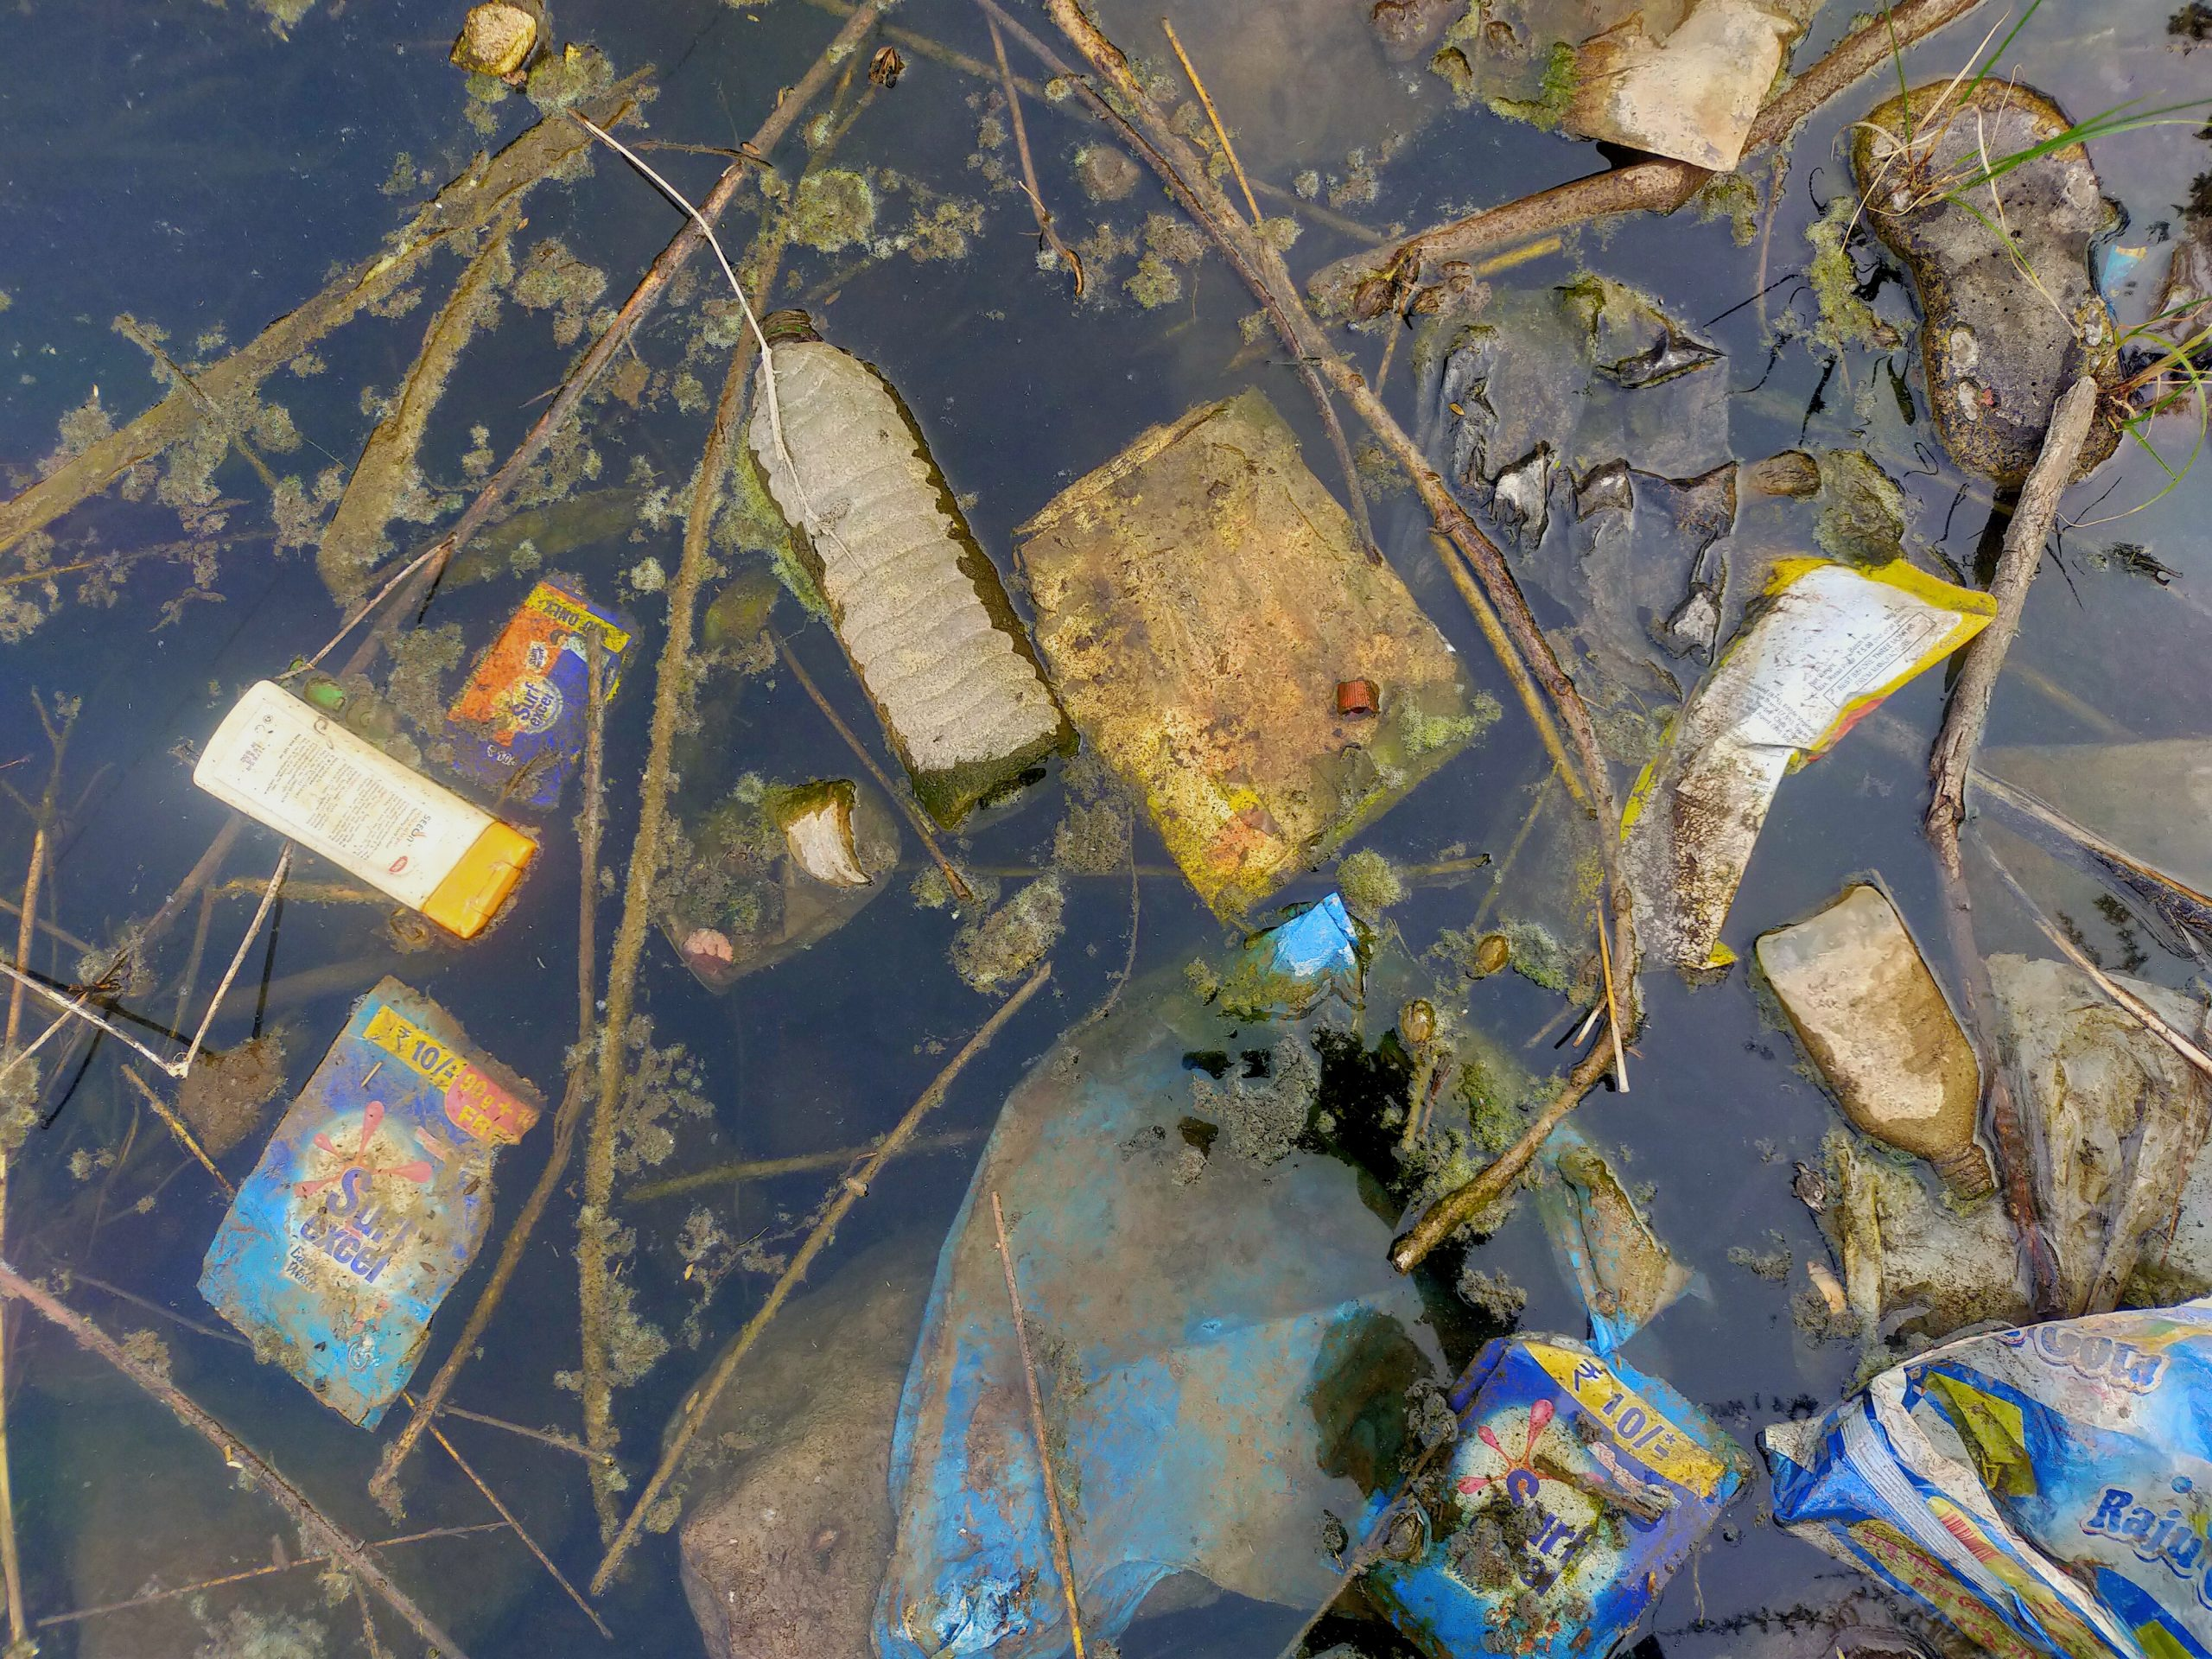 Garbage polluting the water